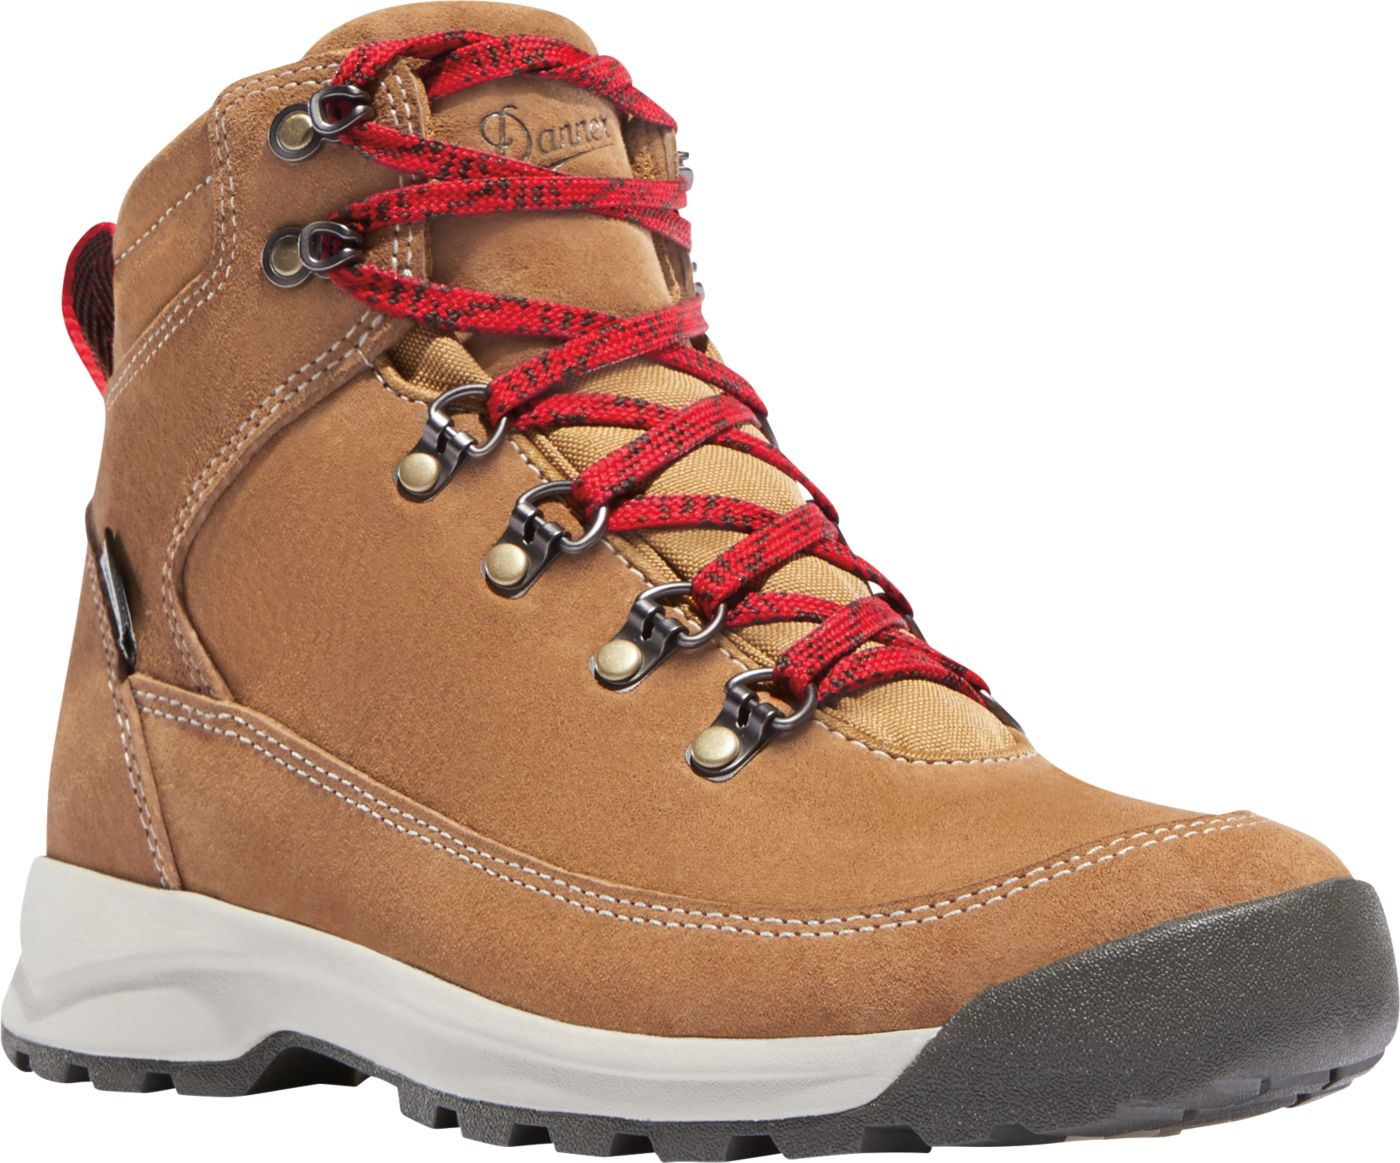 Danner Women's Adrika Waterproof Hiking Boots